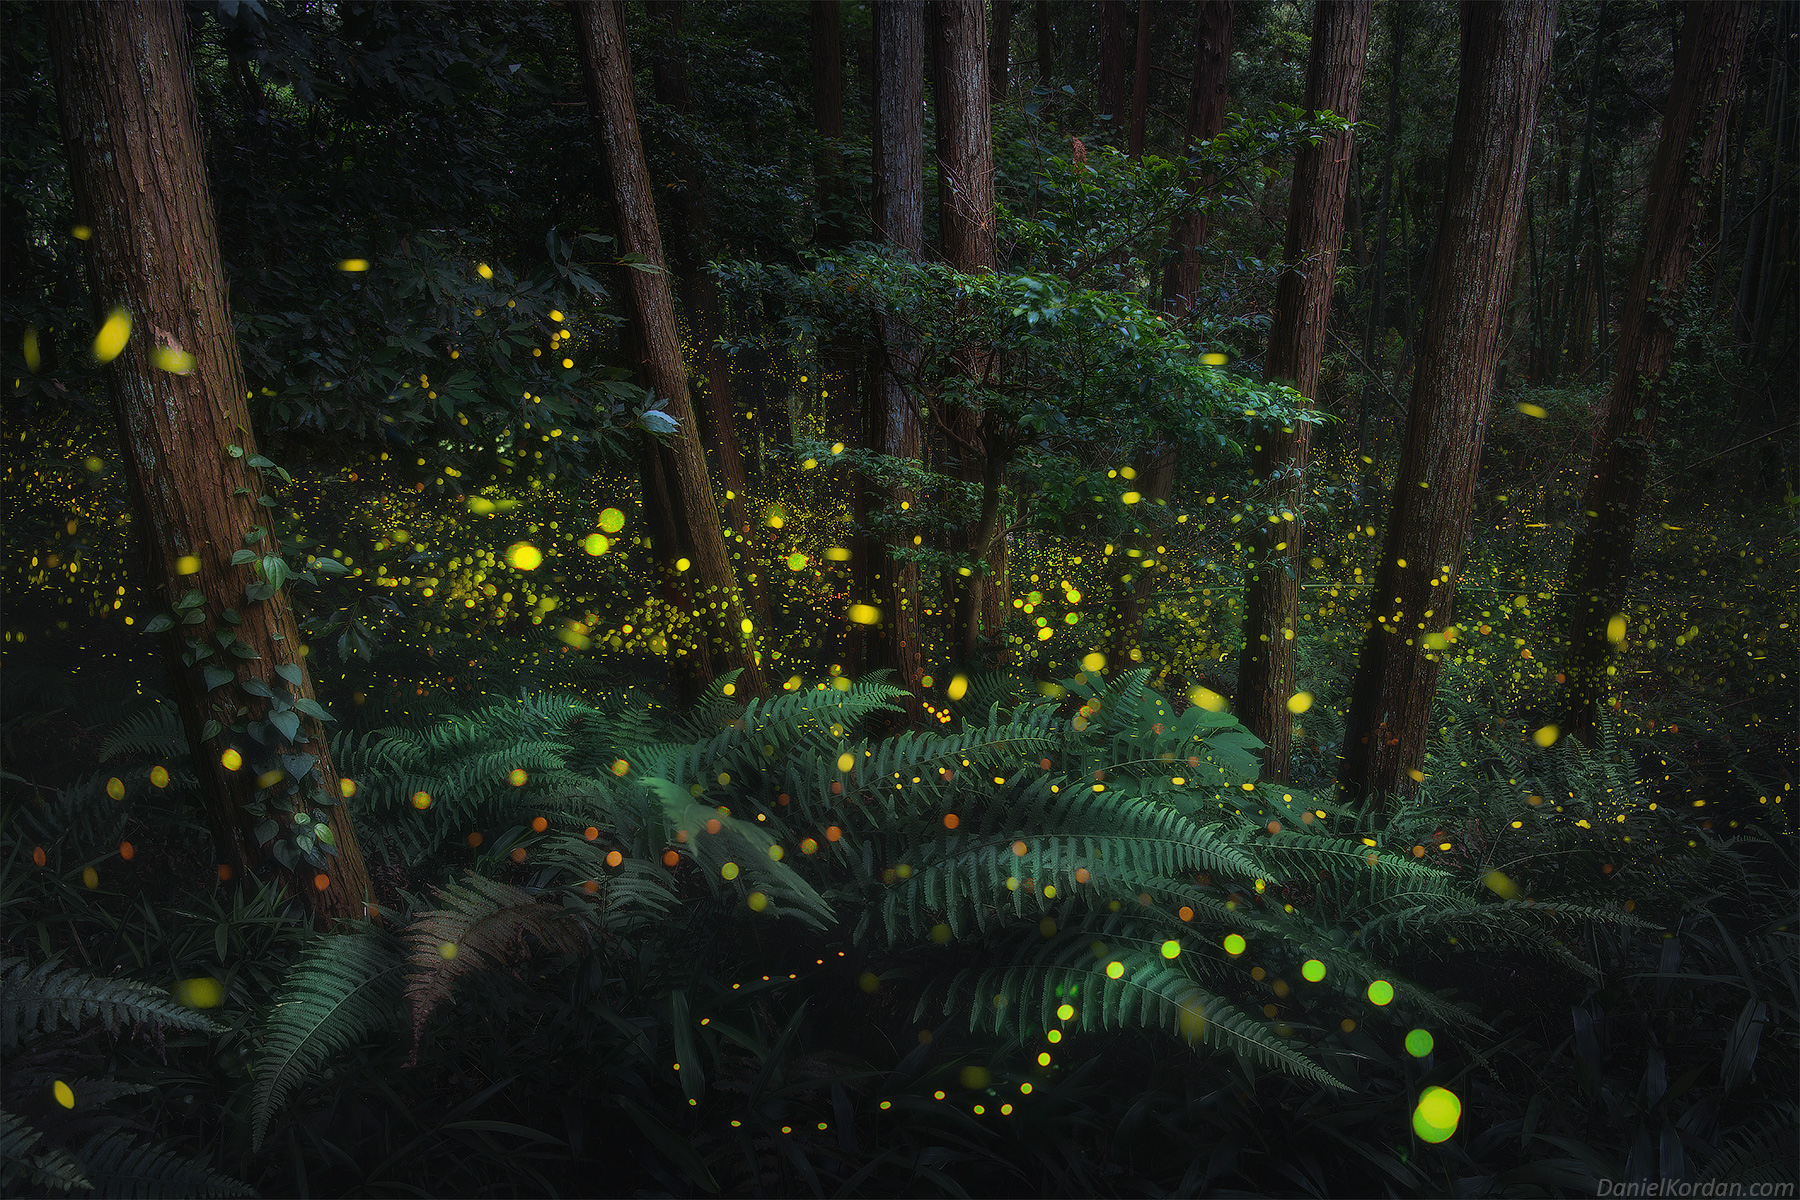 A Dazzling Series of Photos Captures the Soft Glow of Firefly Mating Season in Japan